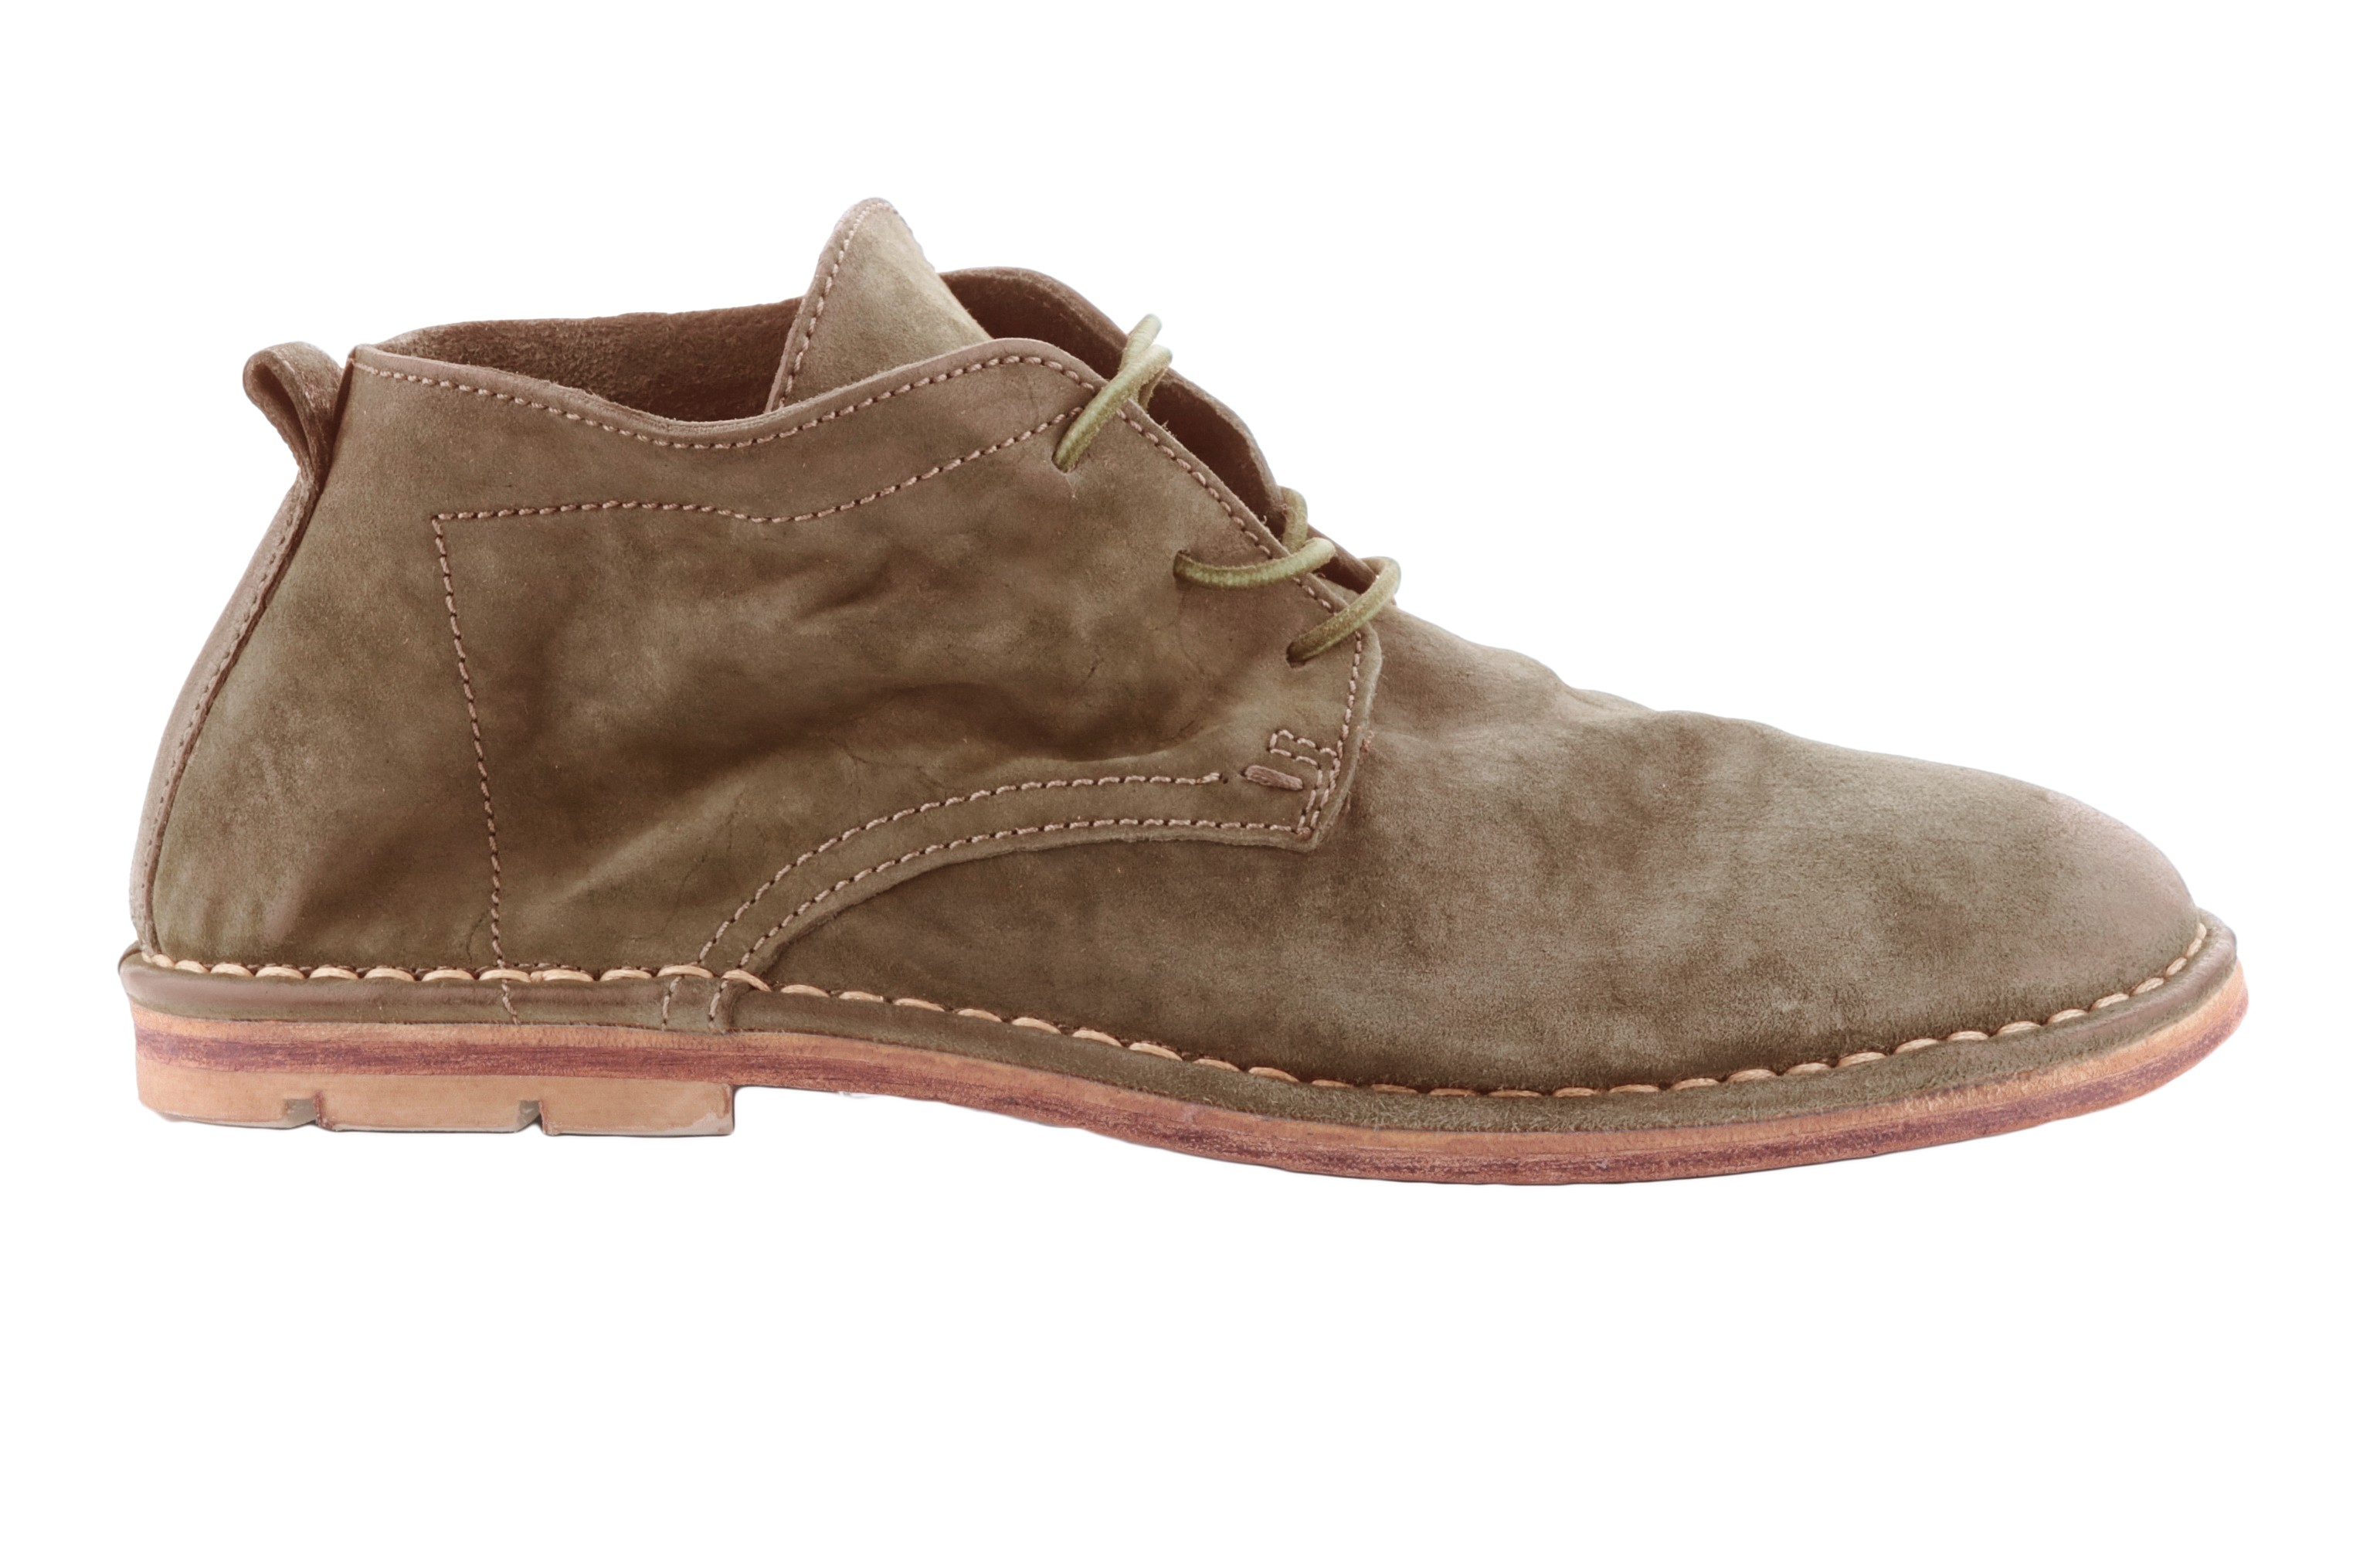 Afbeelding van A.S. 98 A.s. 98 airstep 458205 rino taupe